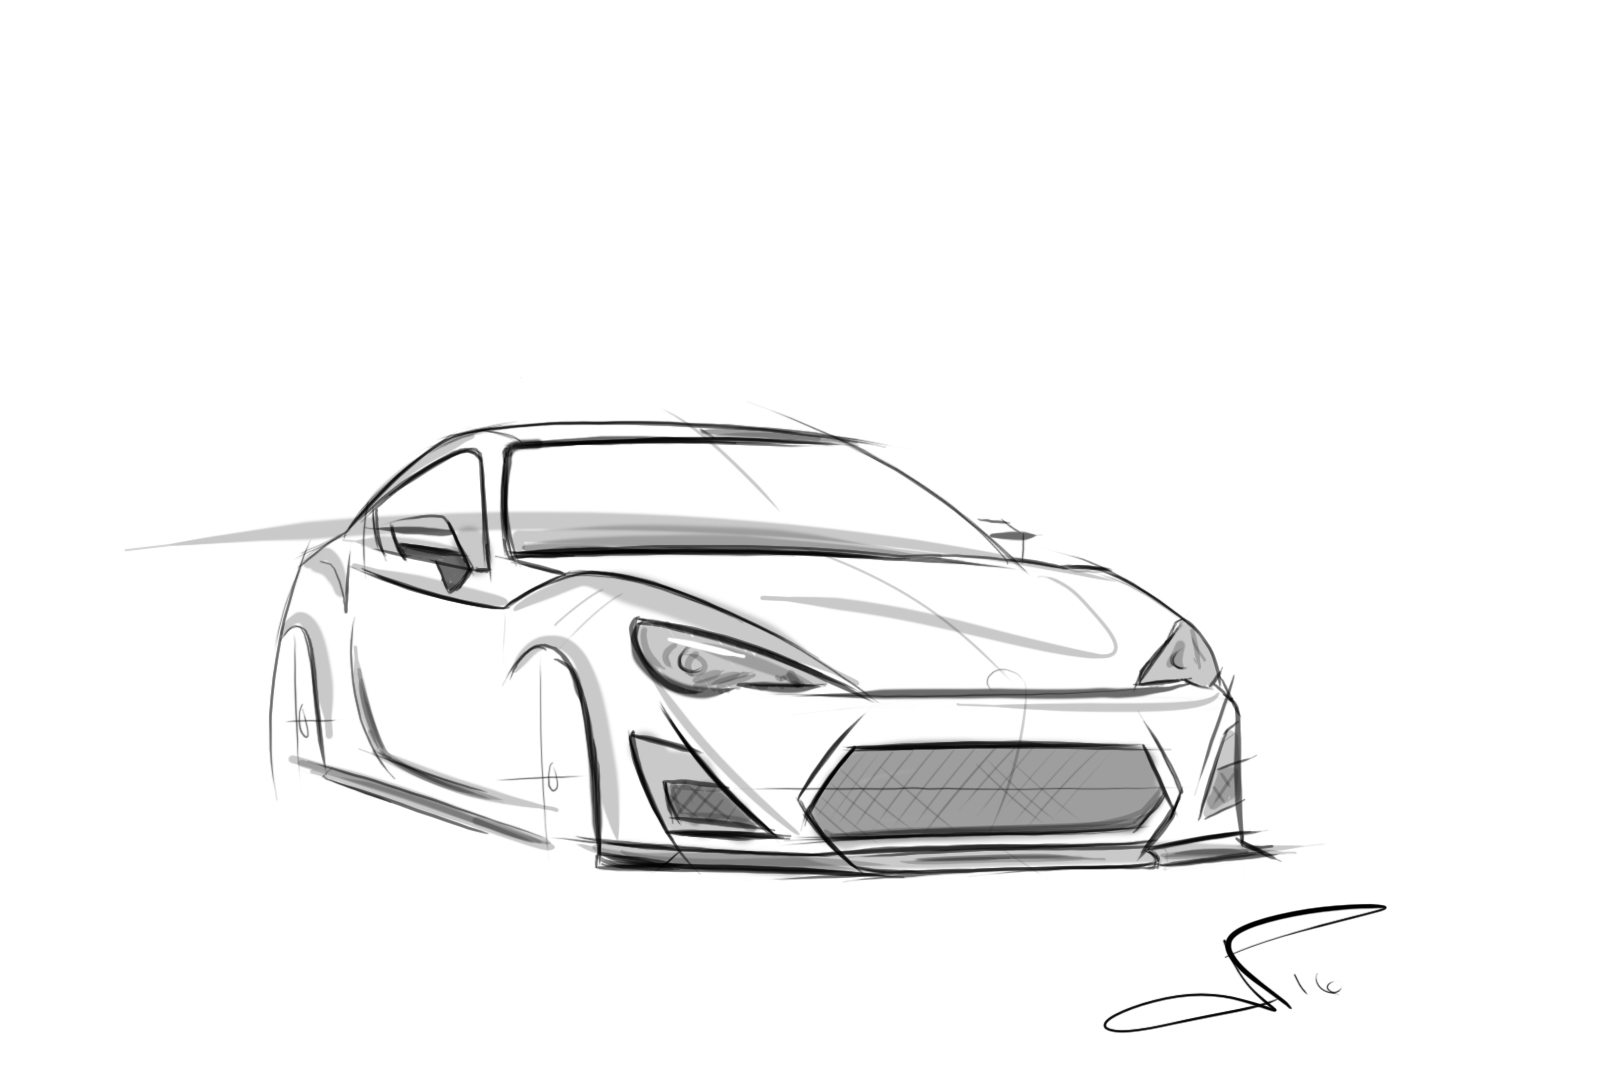 Toyota Scion FRS BRZ GT86 Hand Made Digital Car Sketch Rendering Drawing